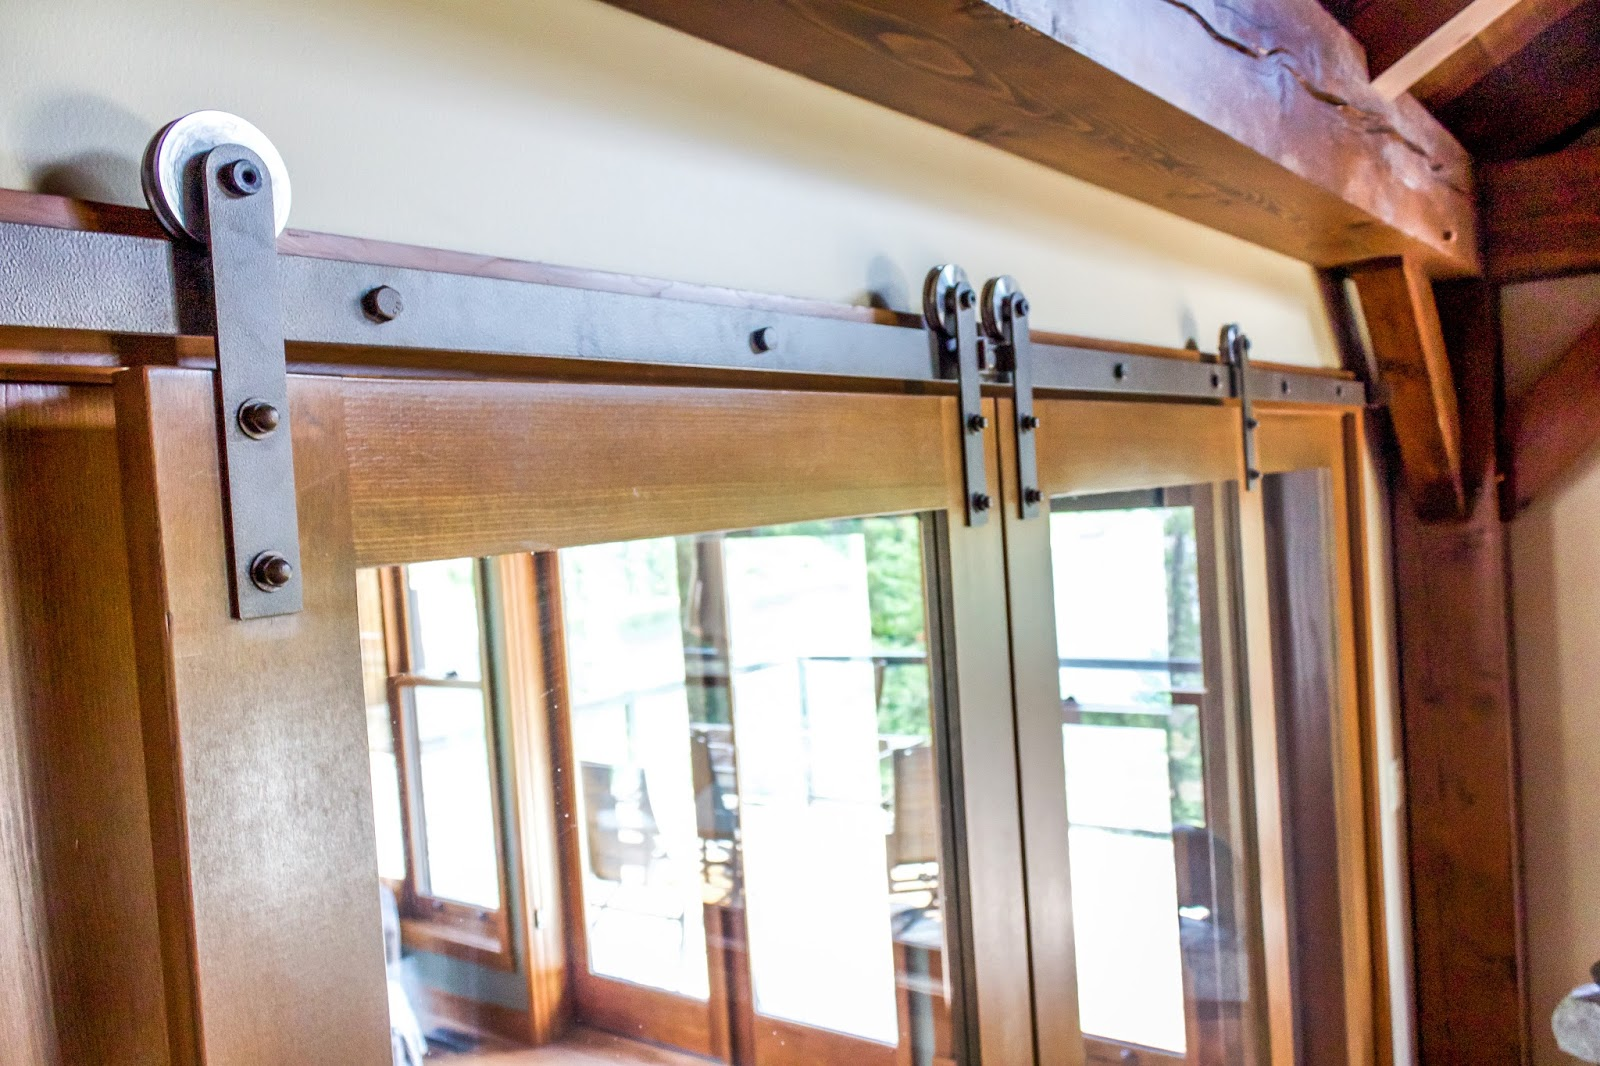 These Doors However Rest On A Set Of Metal Rails That Maintain Rustic Aesthetic Our Mountain Lodge But Are Largely Composed Glass Panels